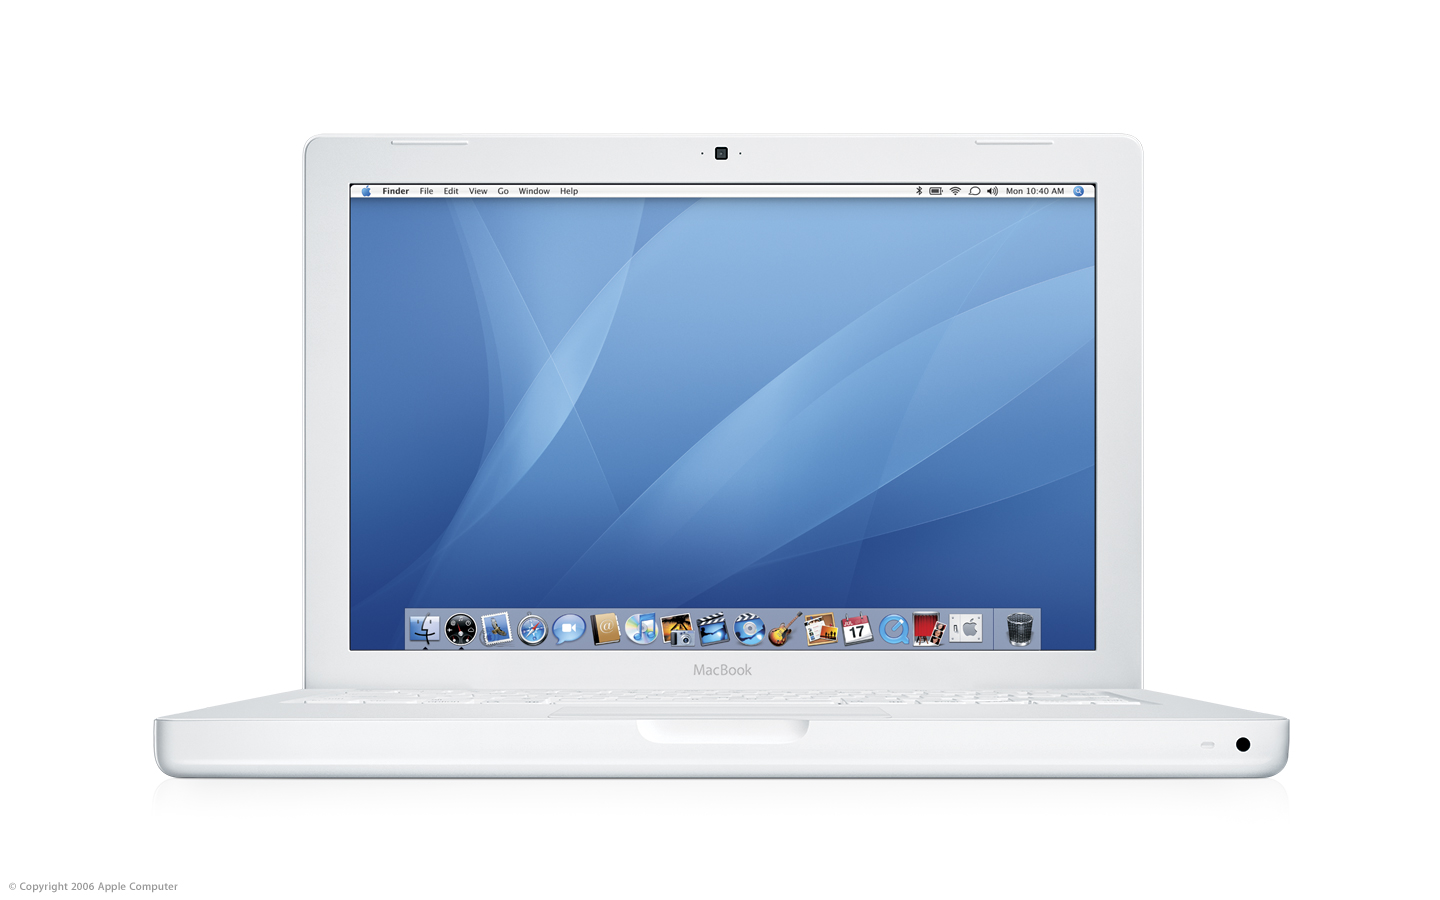 Macbook1white20061108